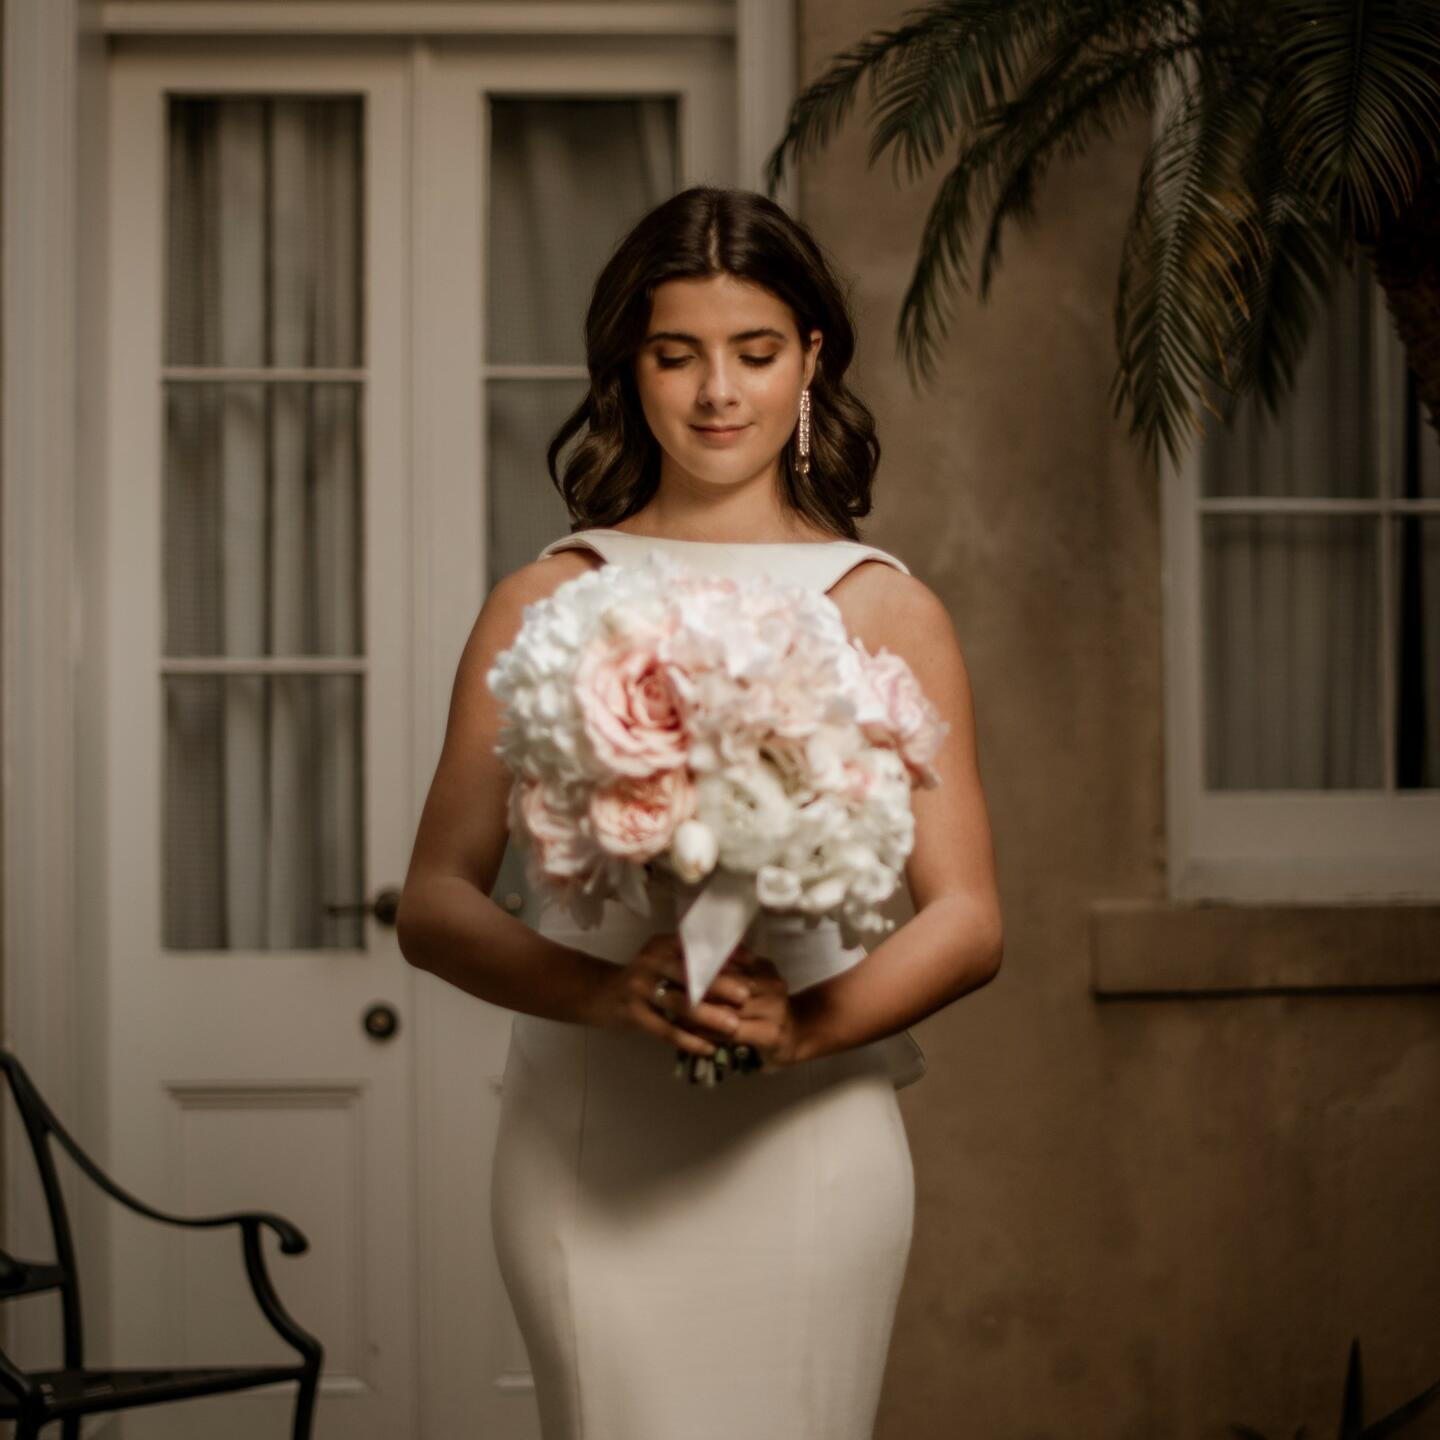 A bride posing for a photo at St. James Hotel